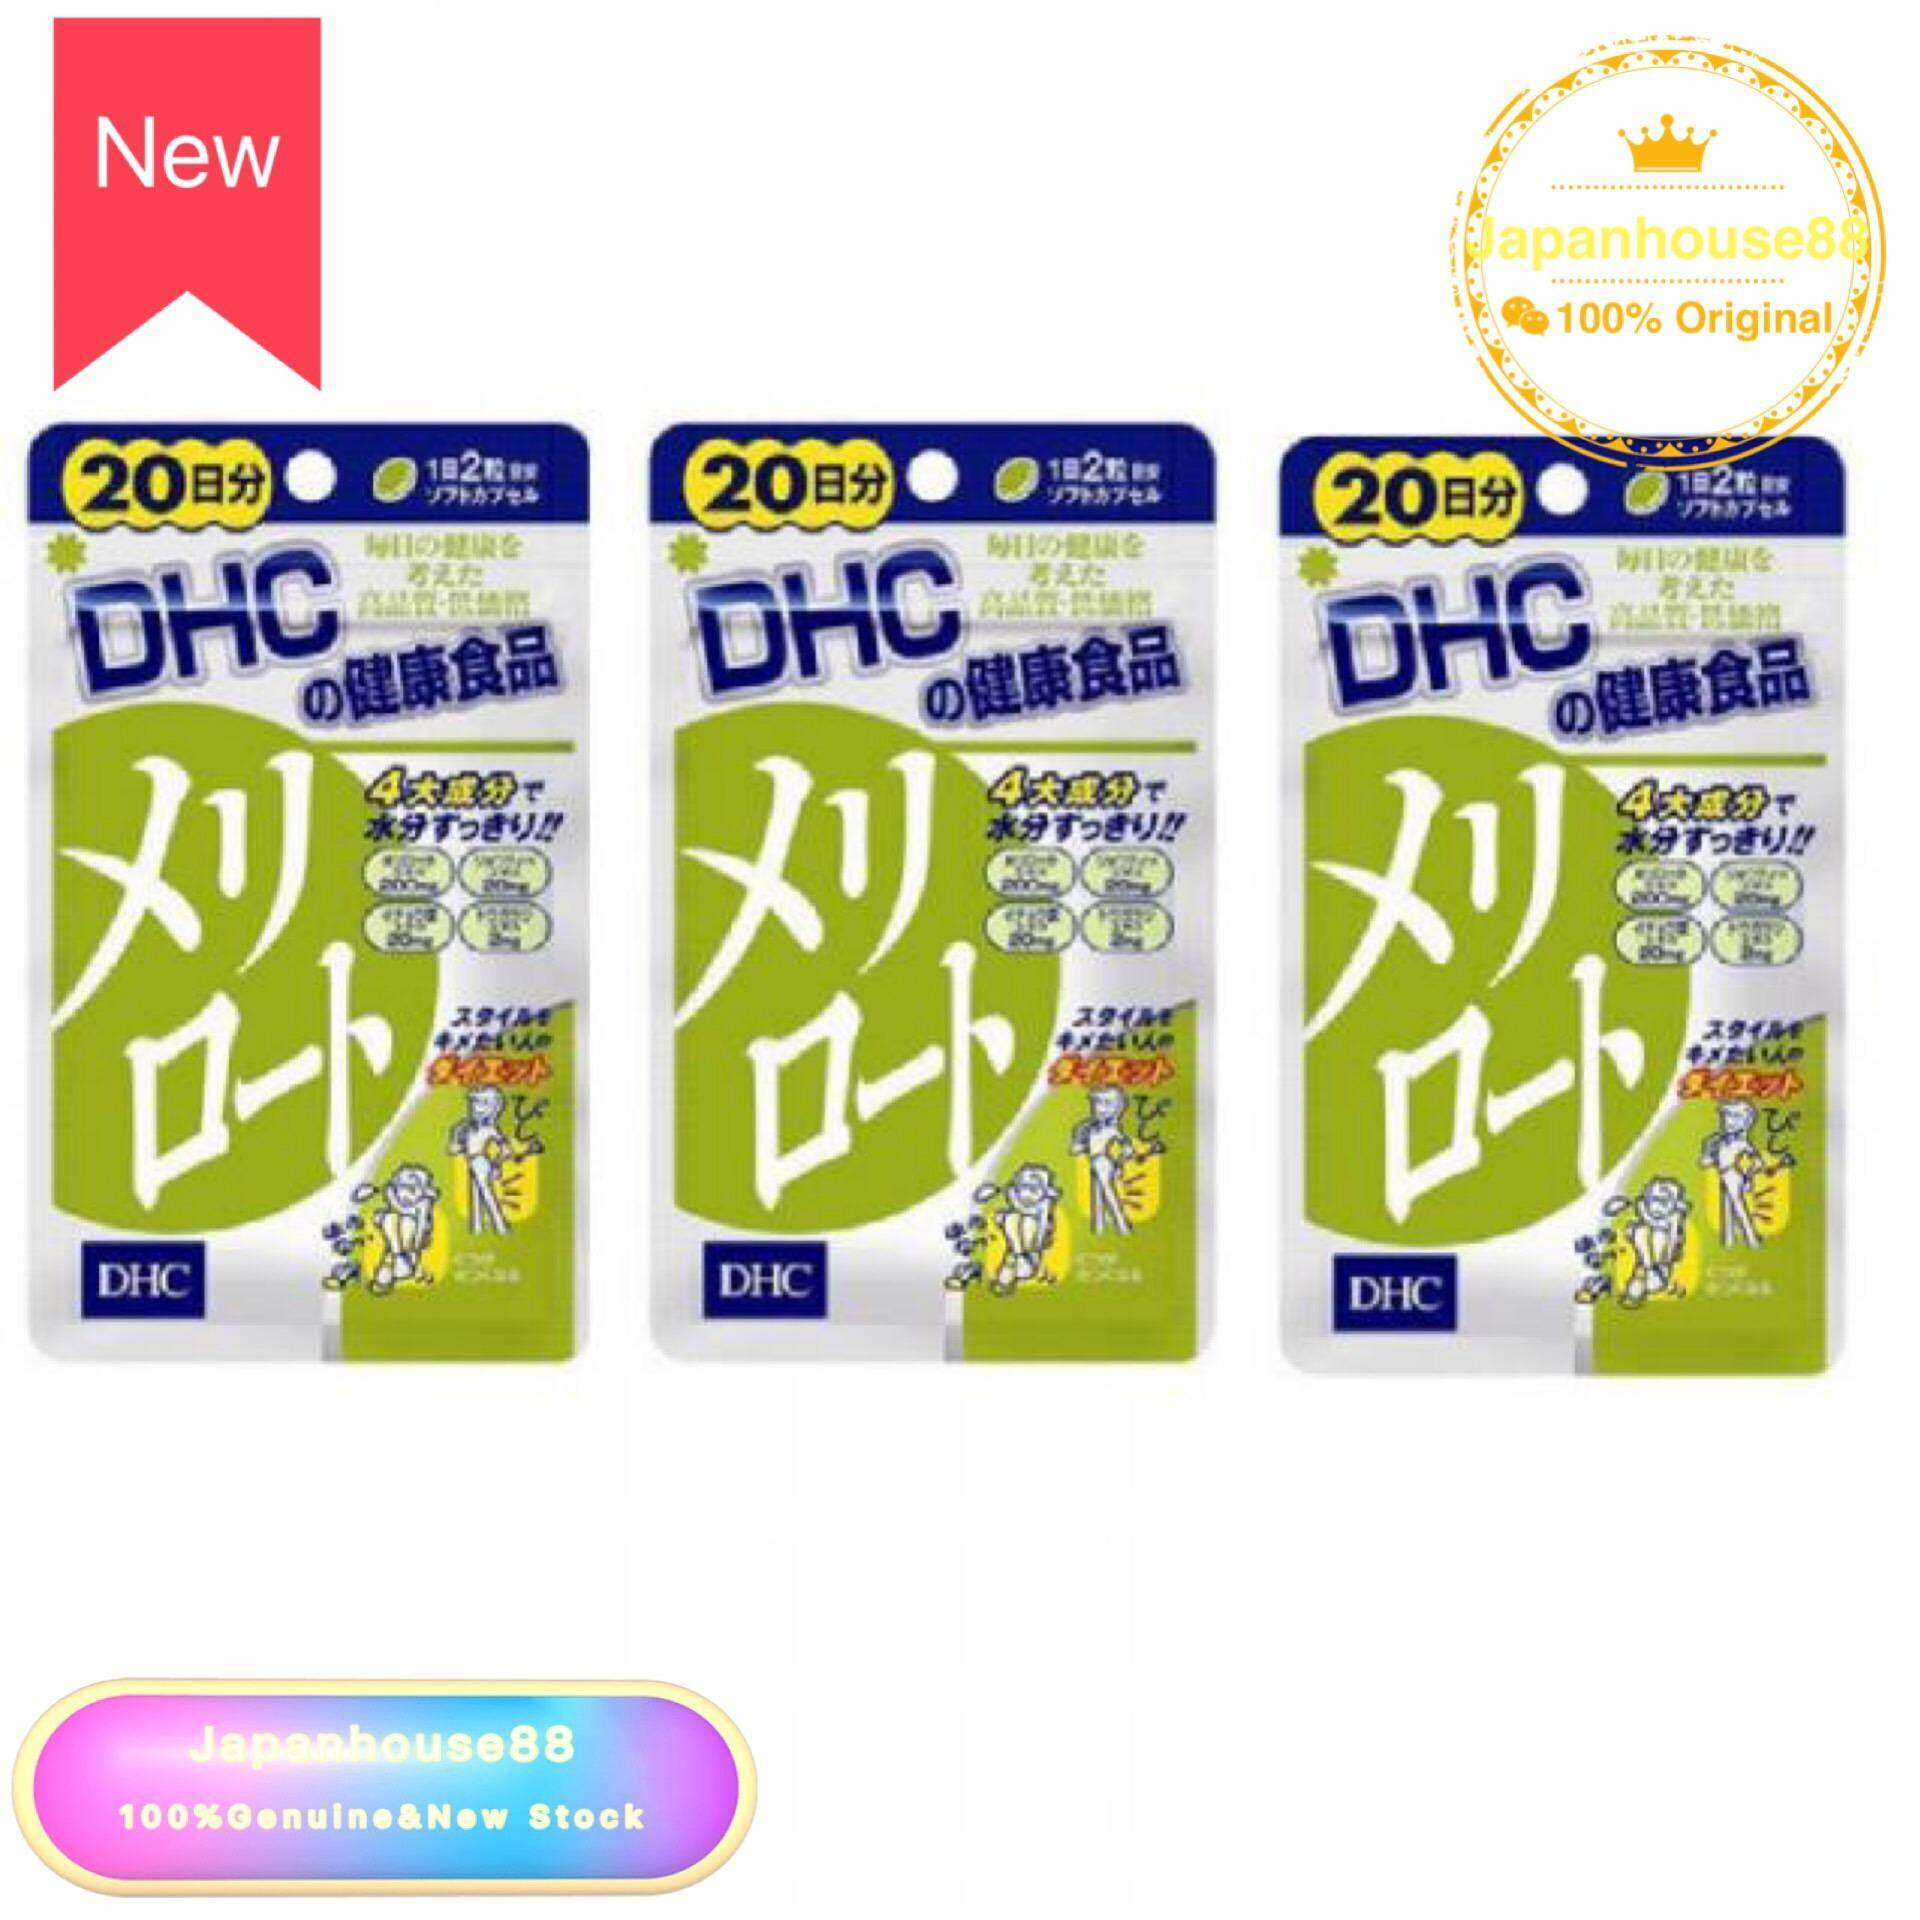 dhc slimming japonia review